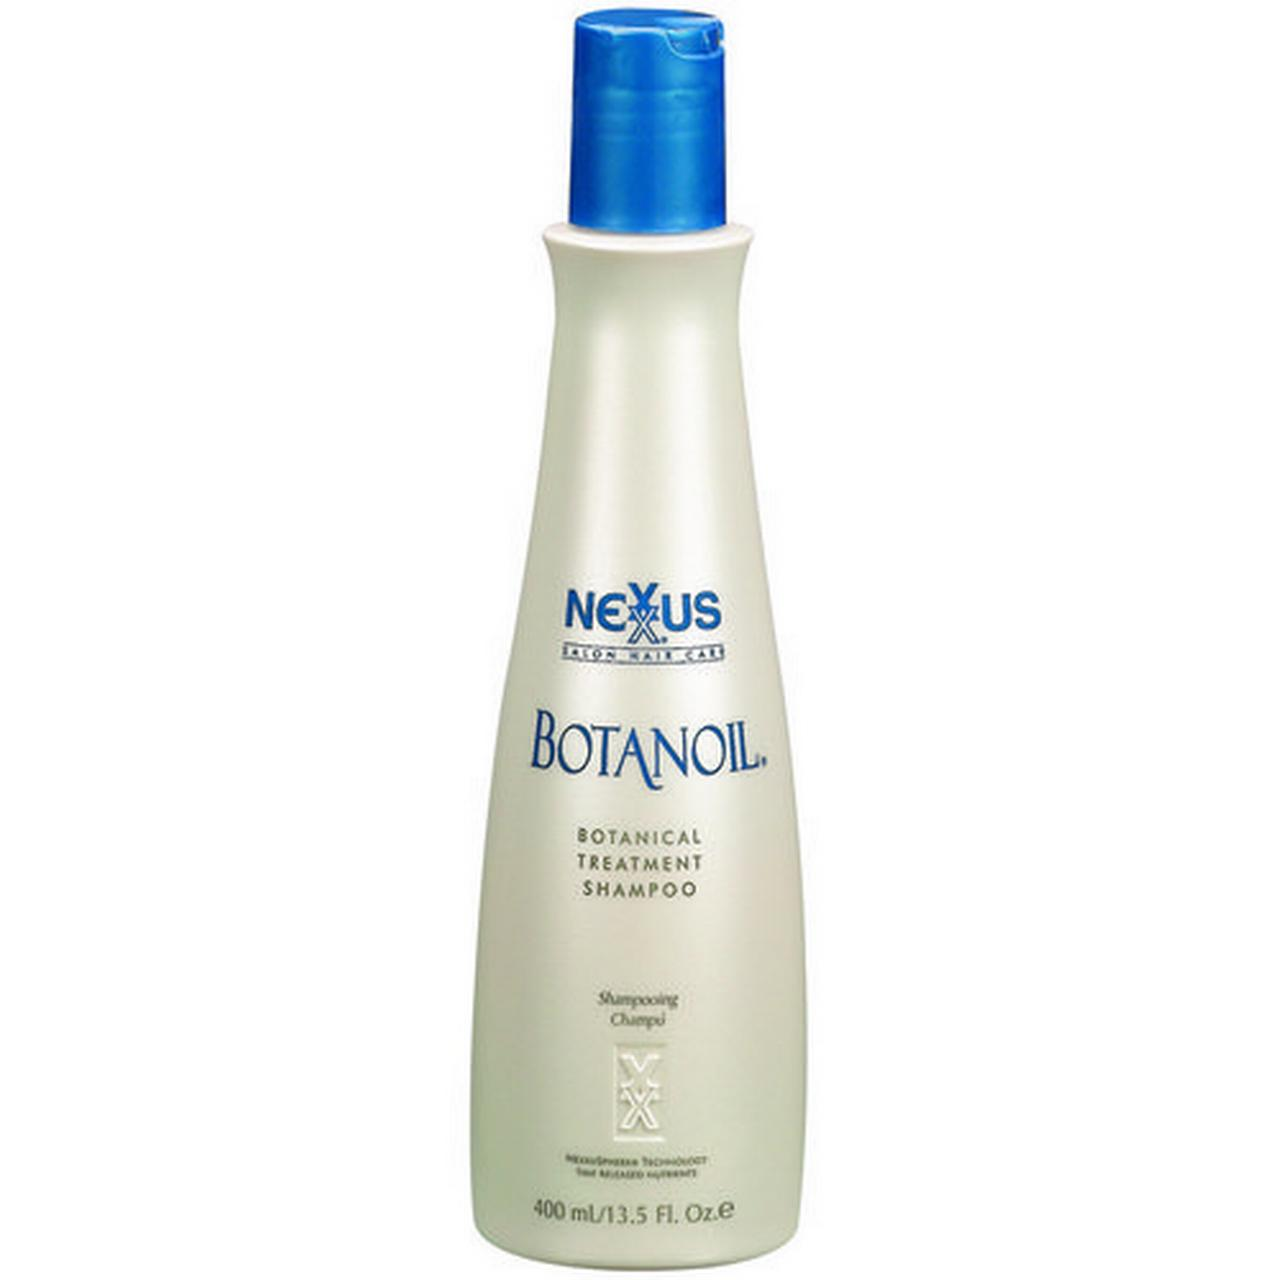 Nexxus Botanoil Botanical Treatment Shampoo, 13.5 oz